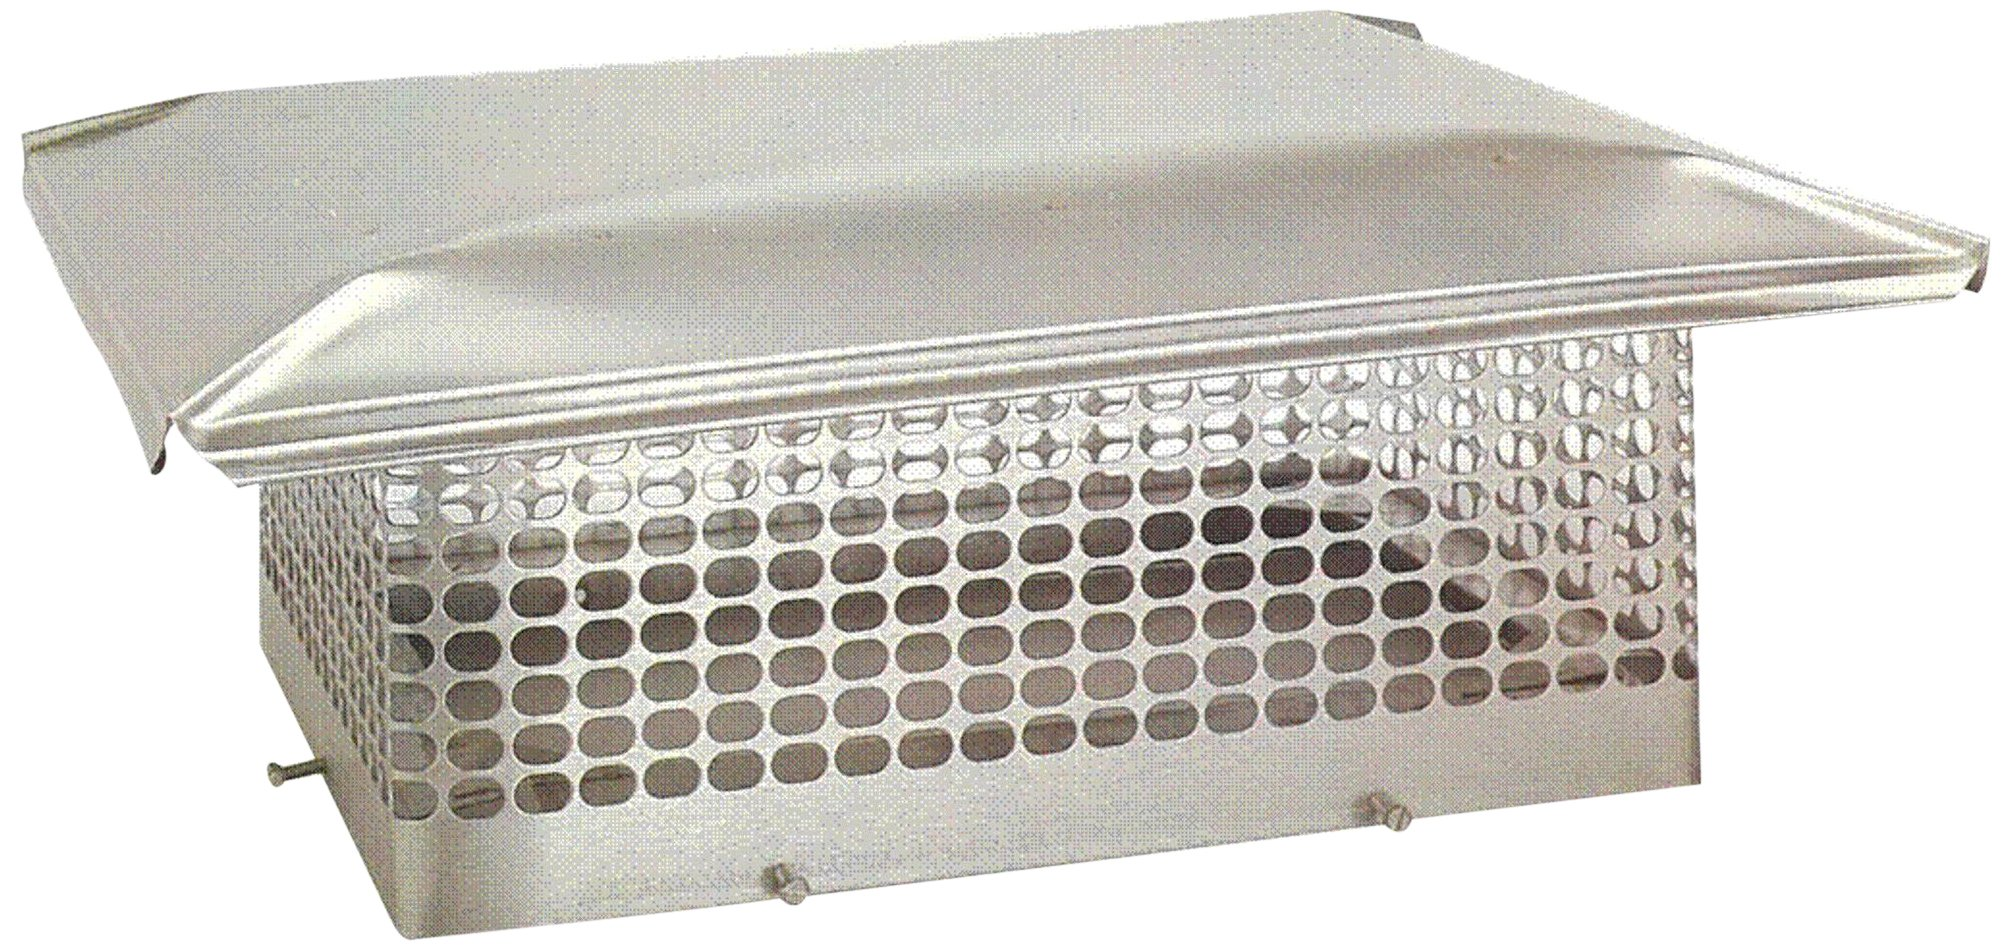 The Forever Cap CCSS1418 13 x 17-Inch Stainless Steel 5/8-Inch Spark Arrestor Mesh Chimney Cap